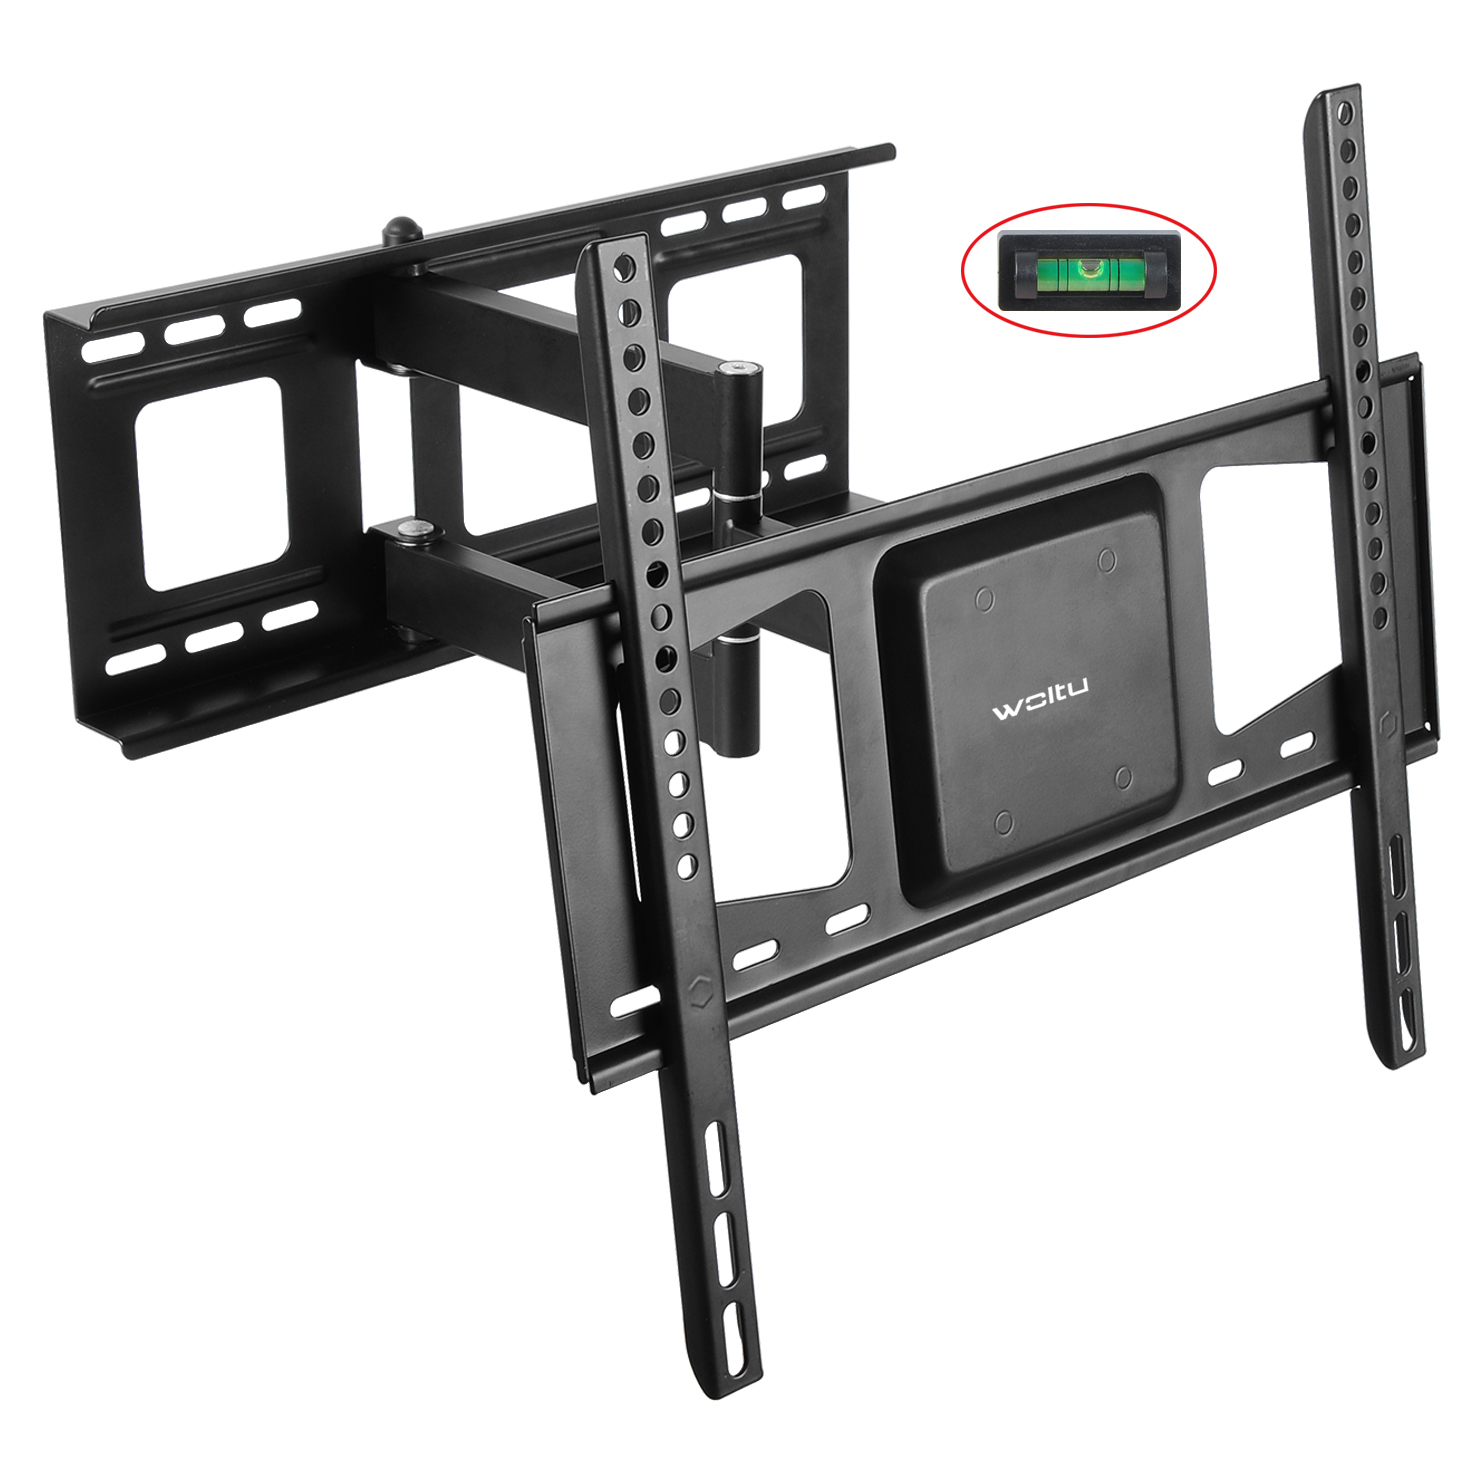 tv fernseher lcd led wandhalterung plasma schwenkbar neigbar 32 50 zoll wh8501 ebay. Black Bedroom Furniture Sets. Home Design Ideas